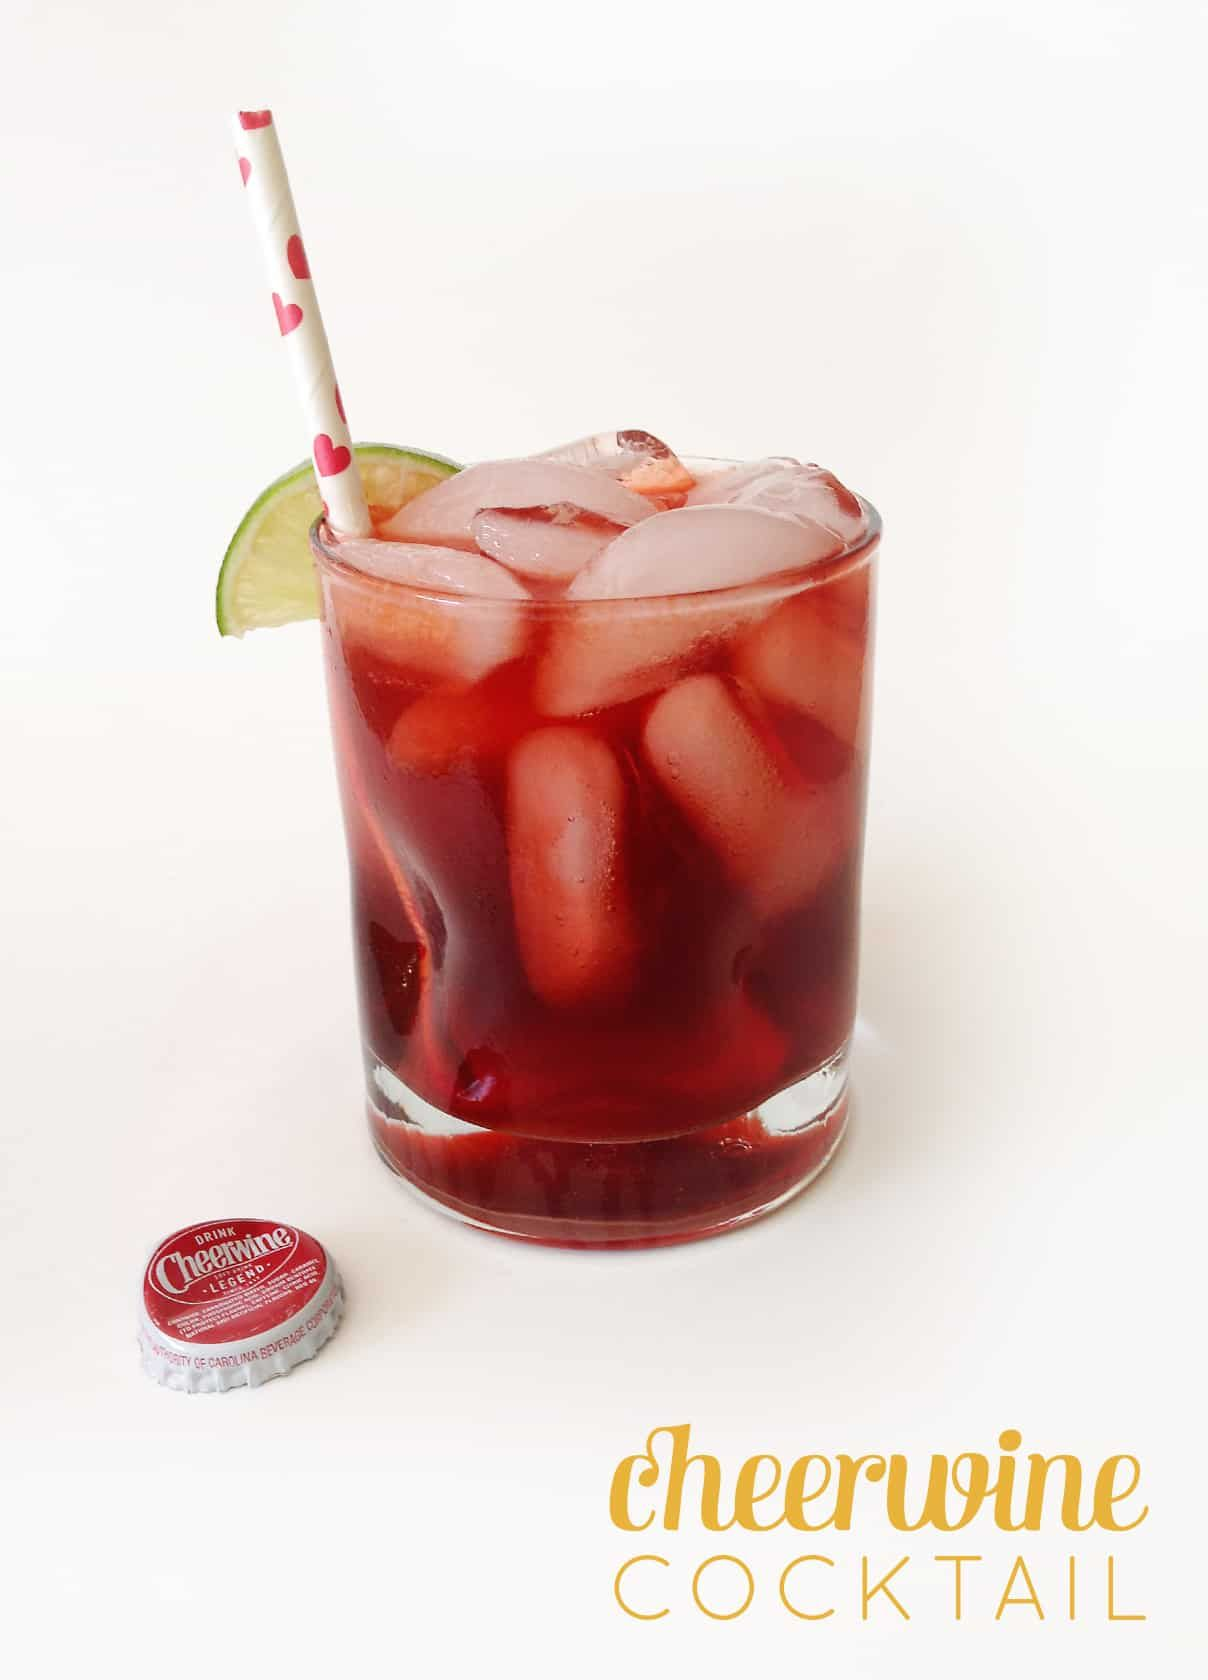 Cheerwine Cocktail Recipe Cheerwine Easy Drink Recipes Cocktails